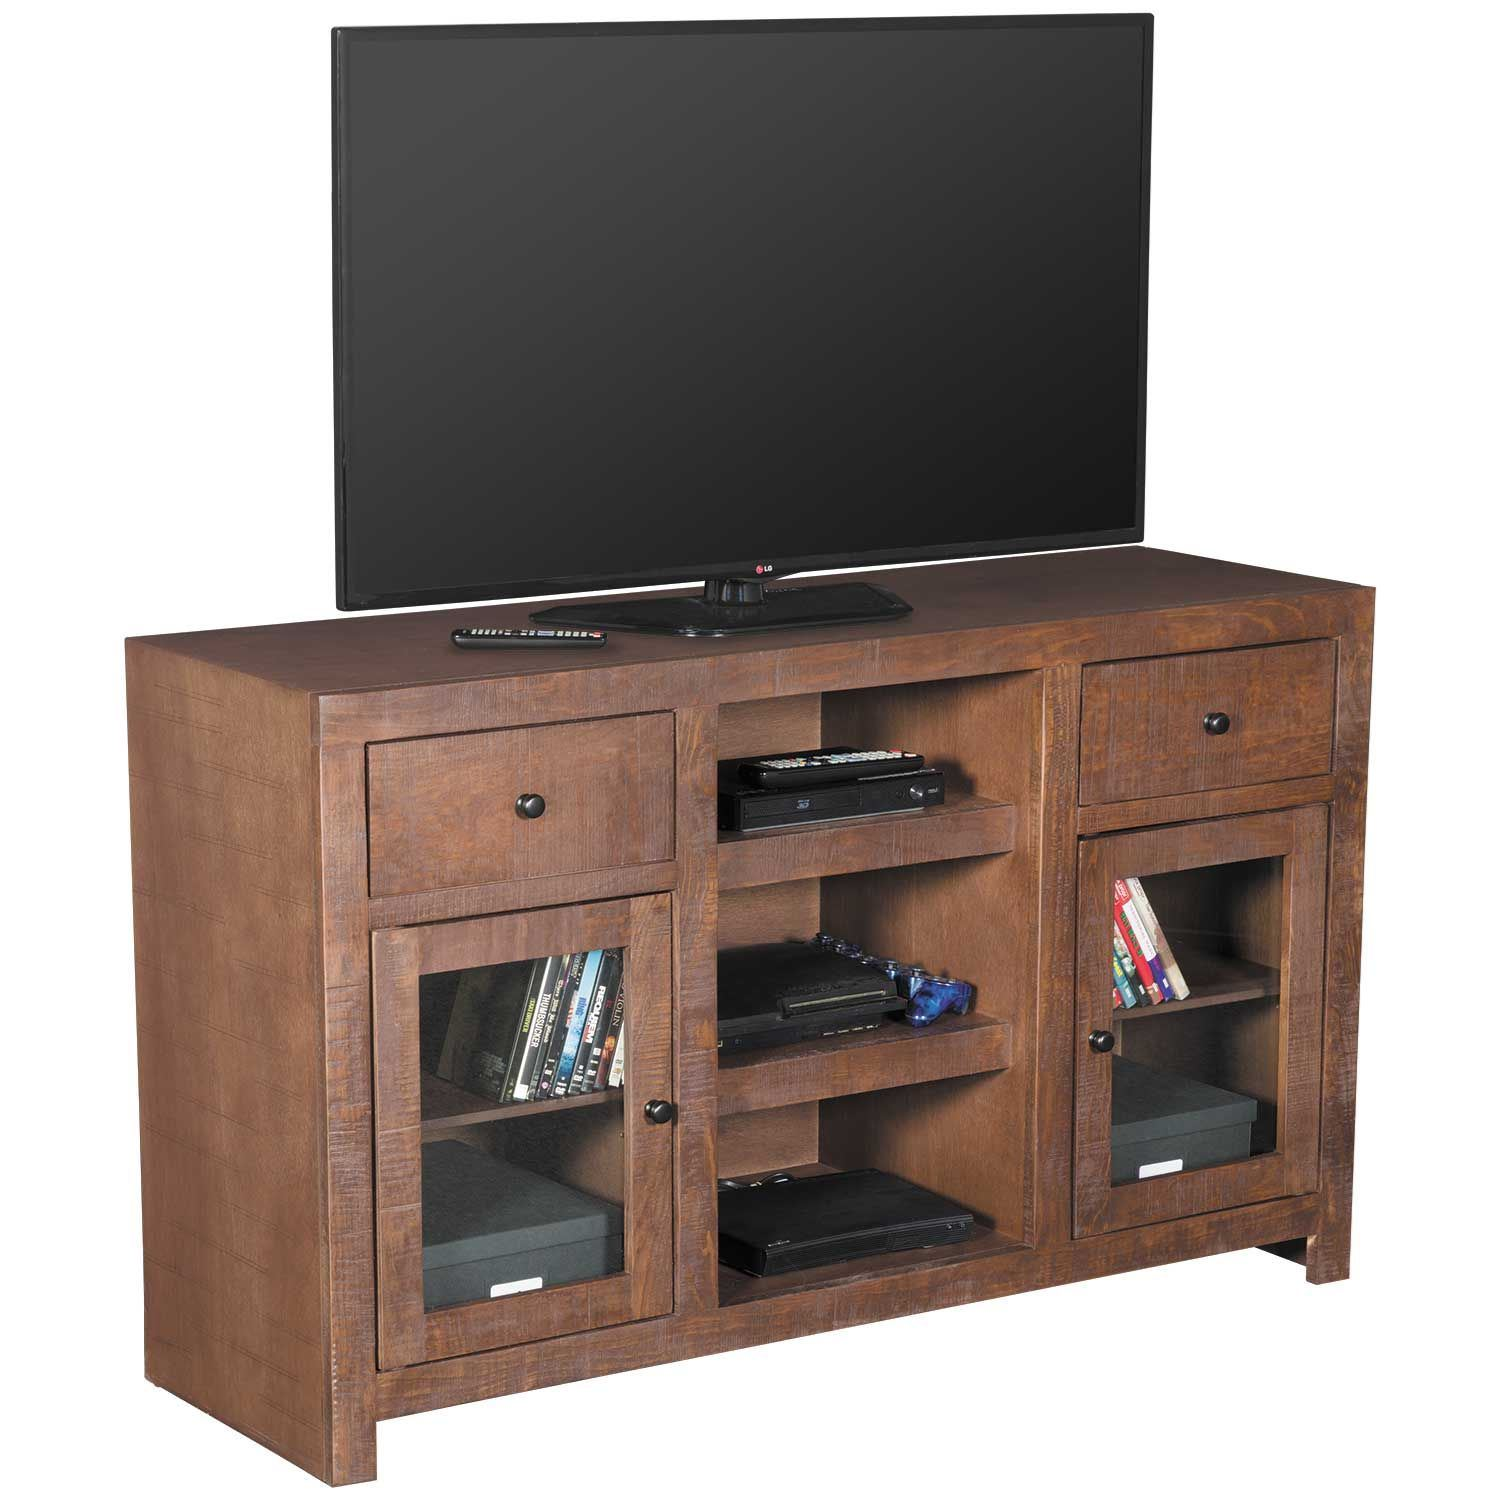 Picture of 52 Inch Canon TV Stand, Chocolate